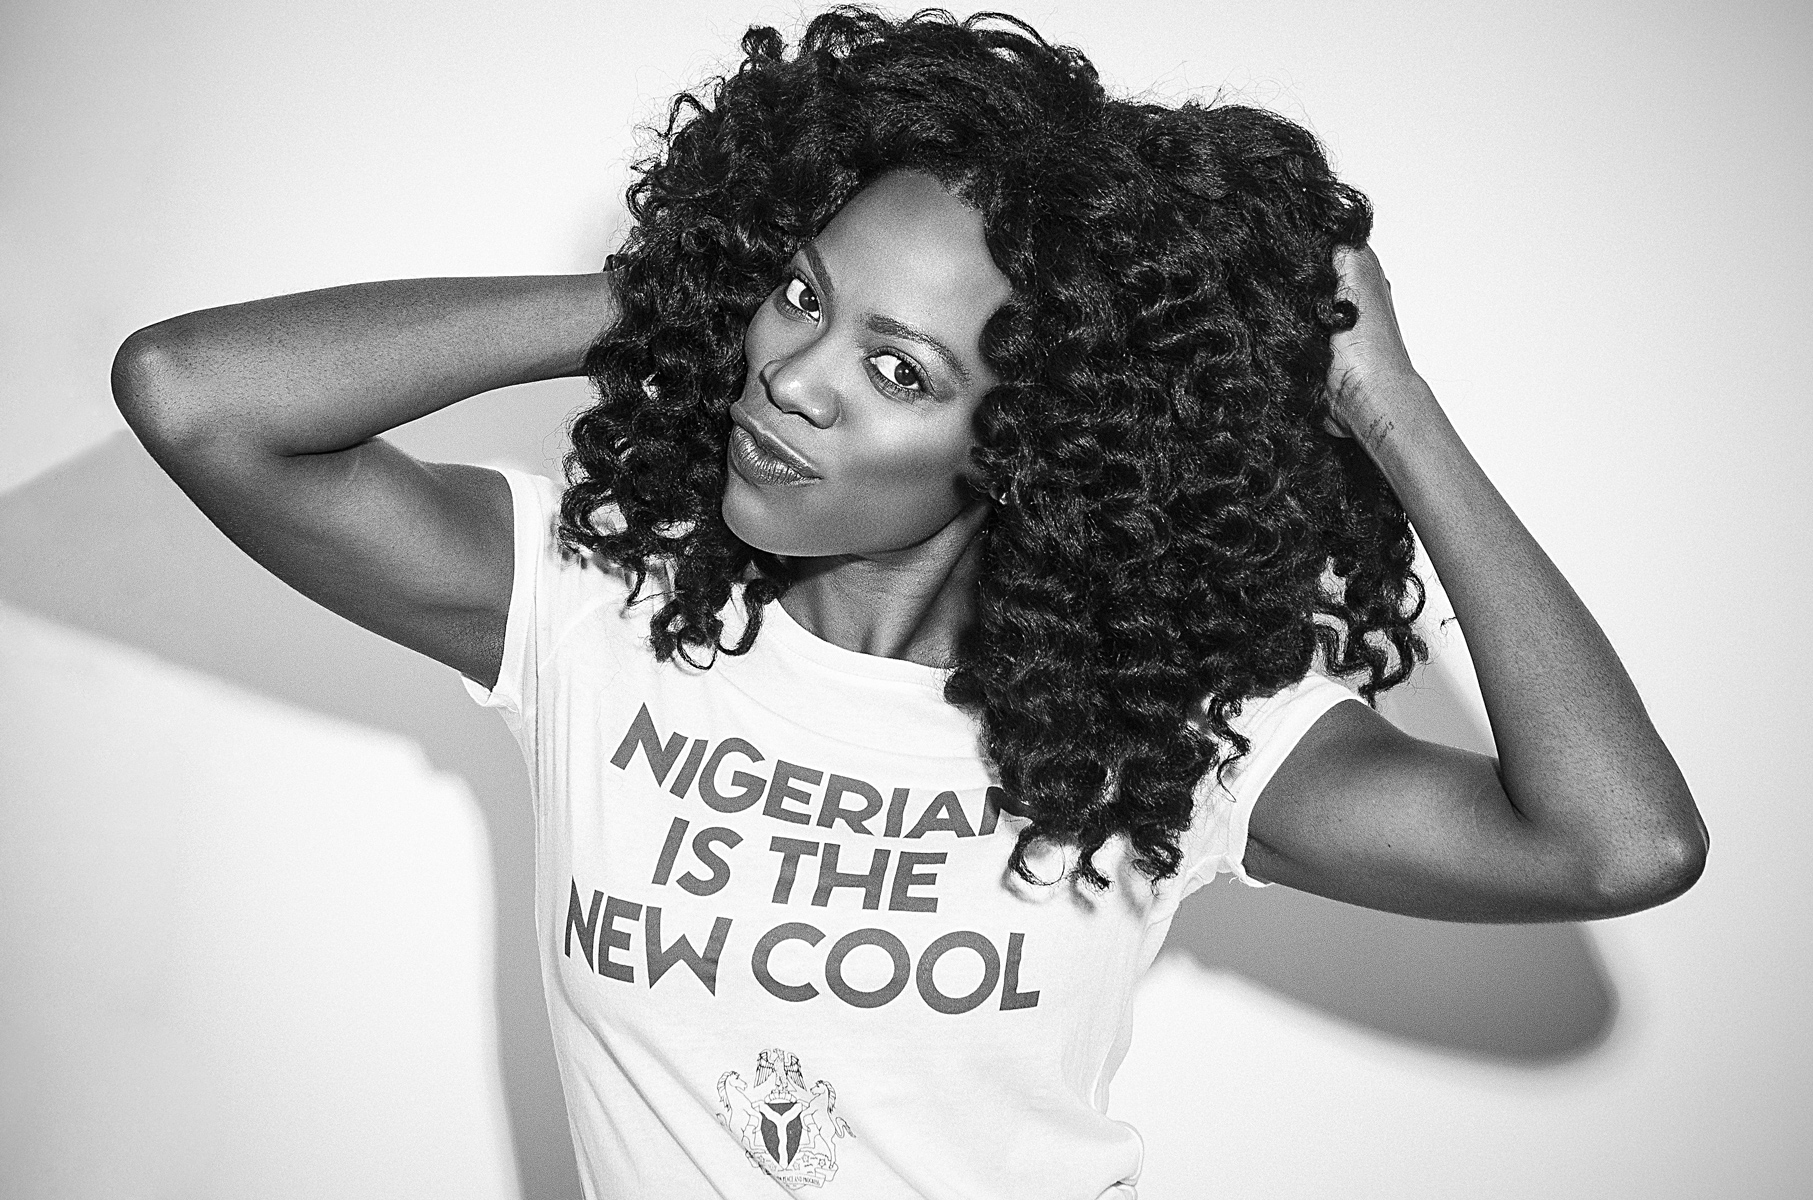 THE WAIT IS SEXY – NIGERIAN-AMERICAN ACTRESS YVONNE ORJI ON DATING & VIRGINITY